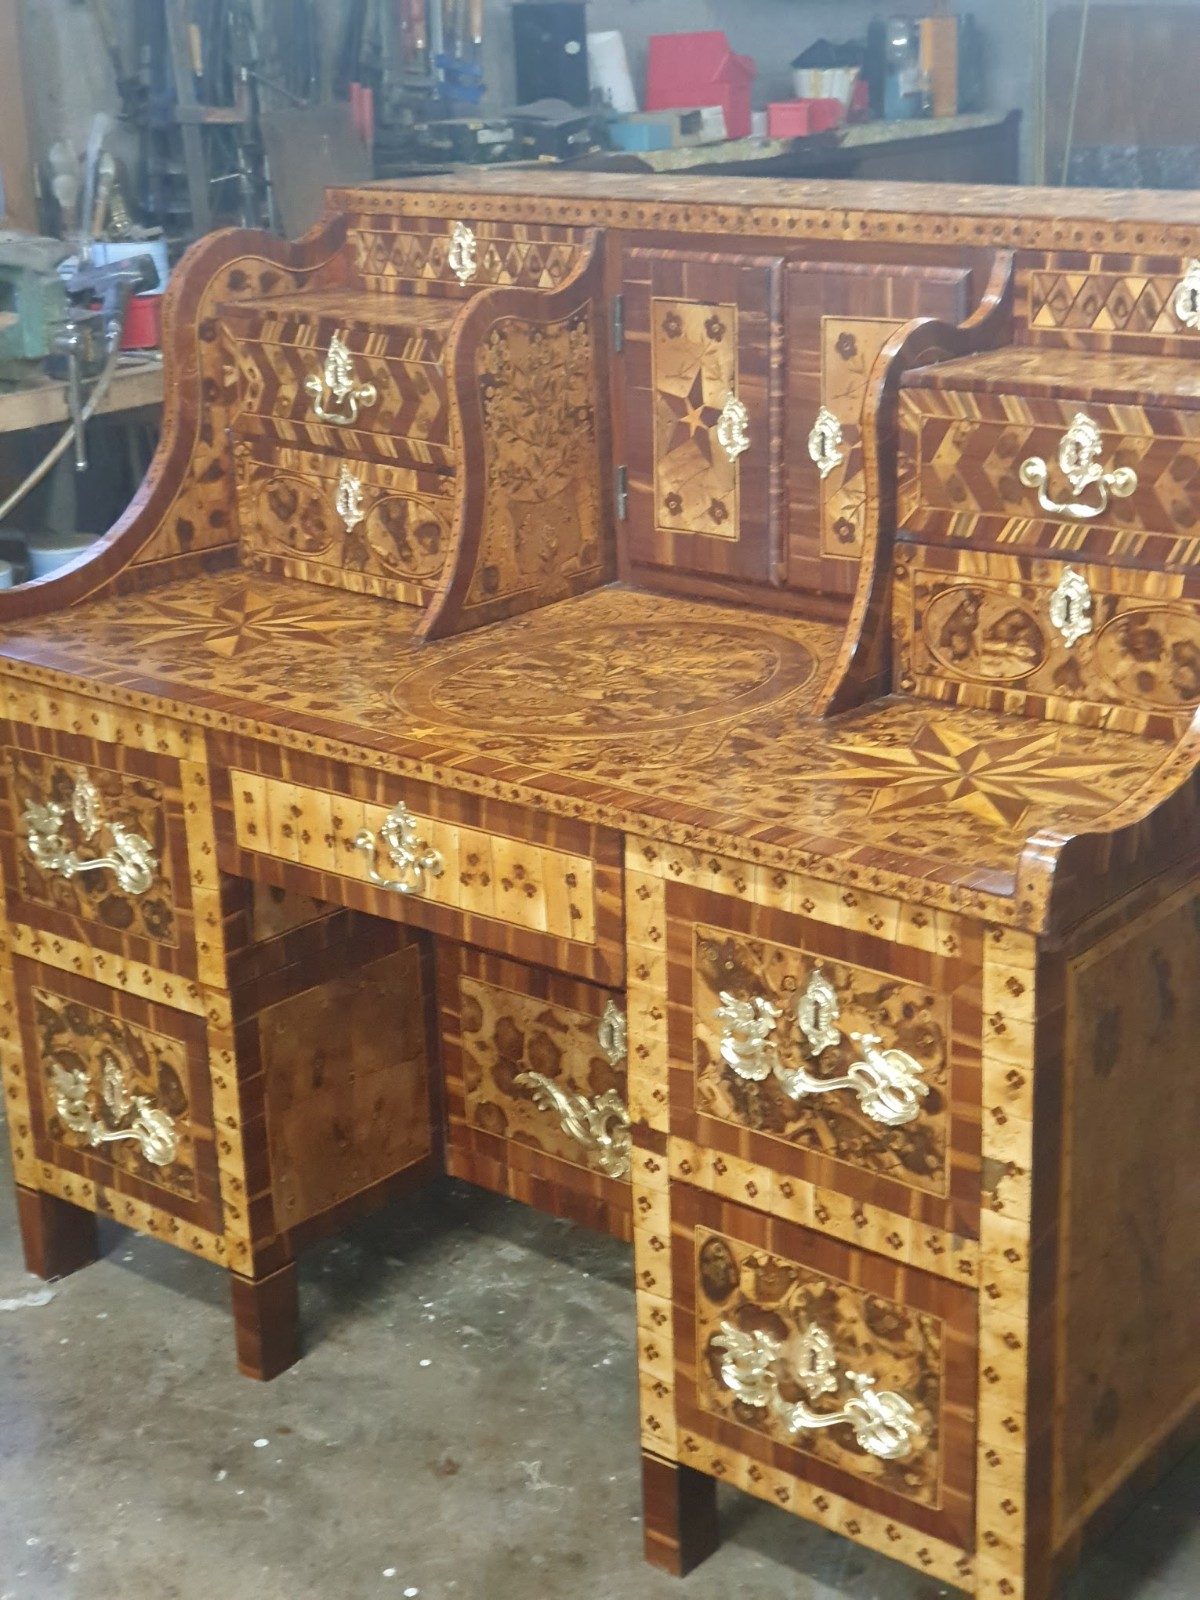 RESTORATION OF A PAGEANTRY FURNITURE BY ANTIQUAIRE SEBASTIEN NAPOLI